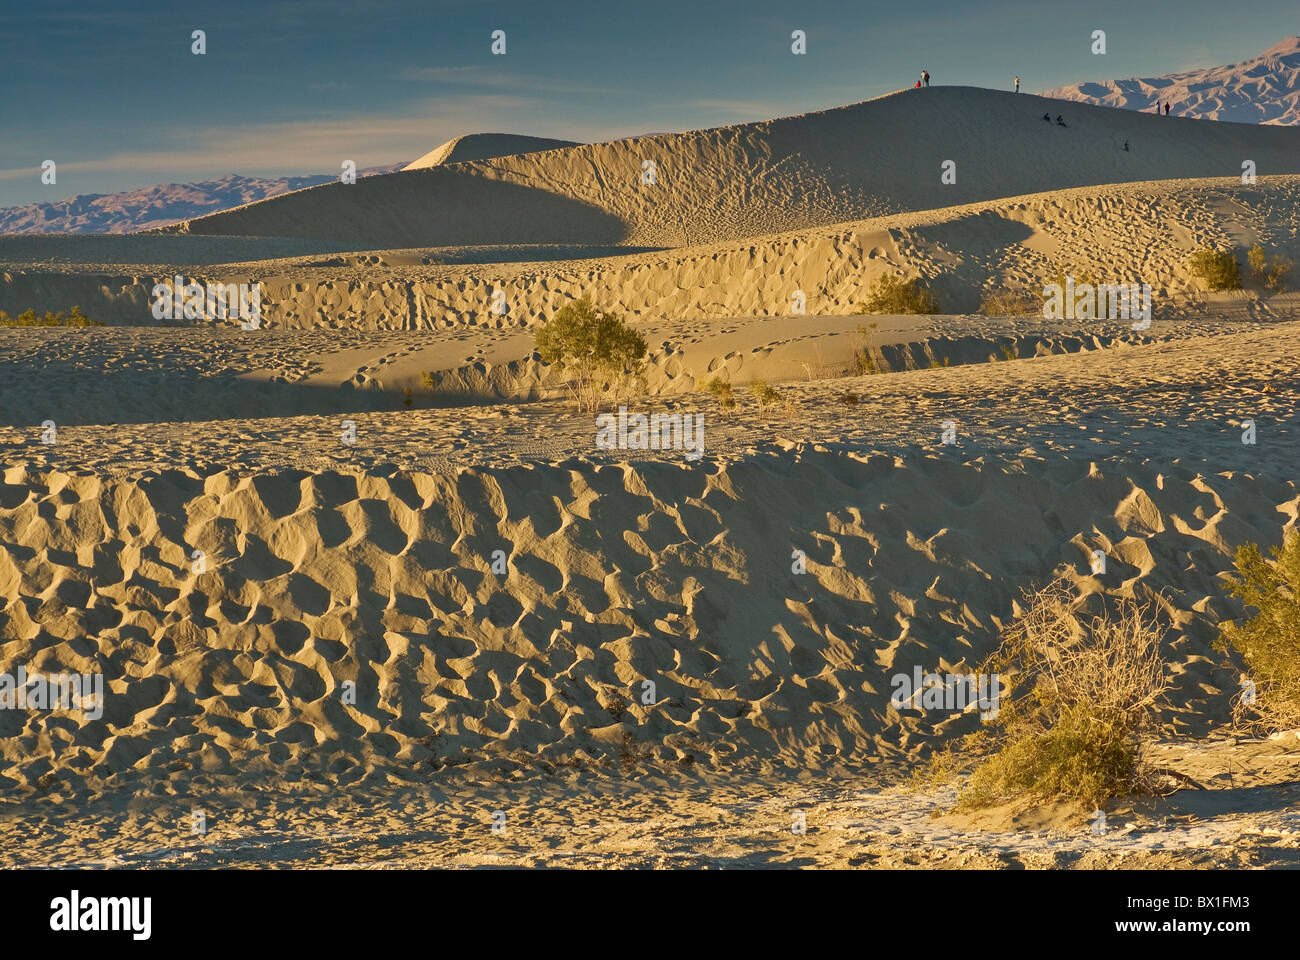 Mesquite Flat Sand Dunes marred by footprints at sunset, Death Valley National Park, California, USA - Stock Image